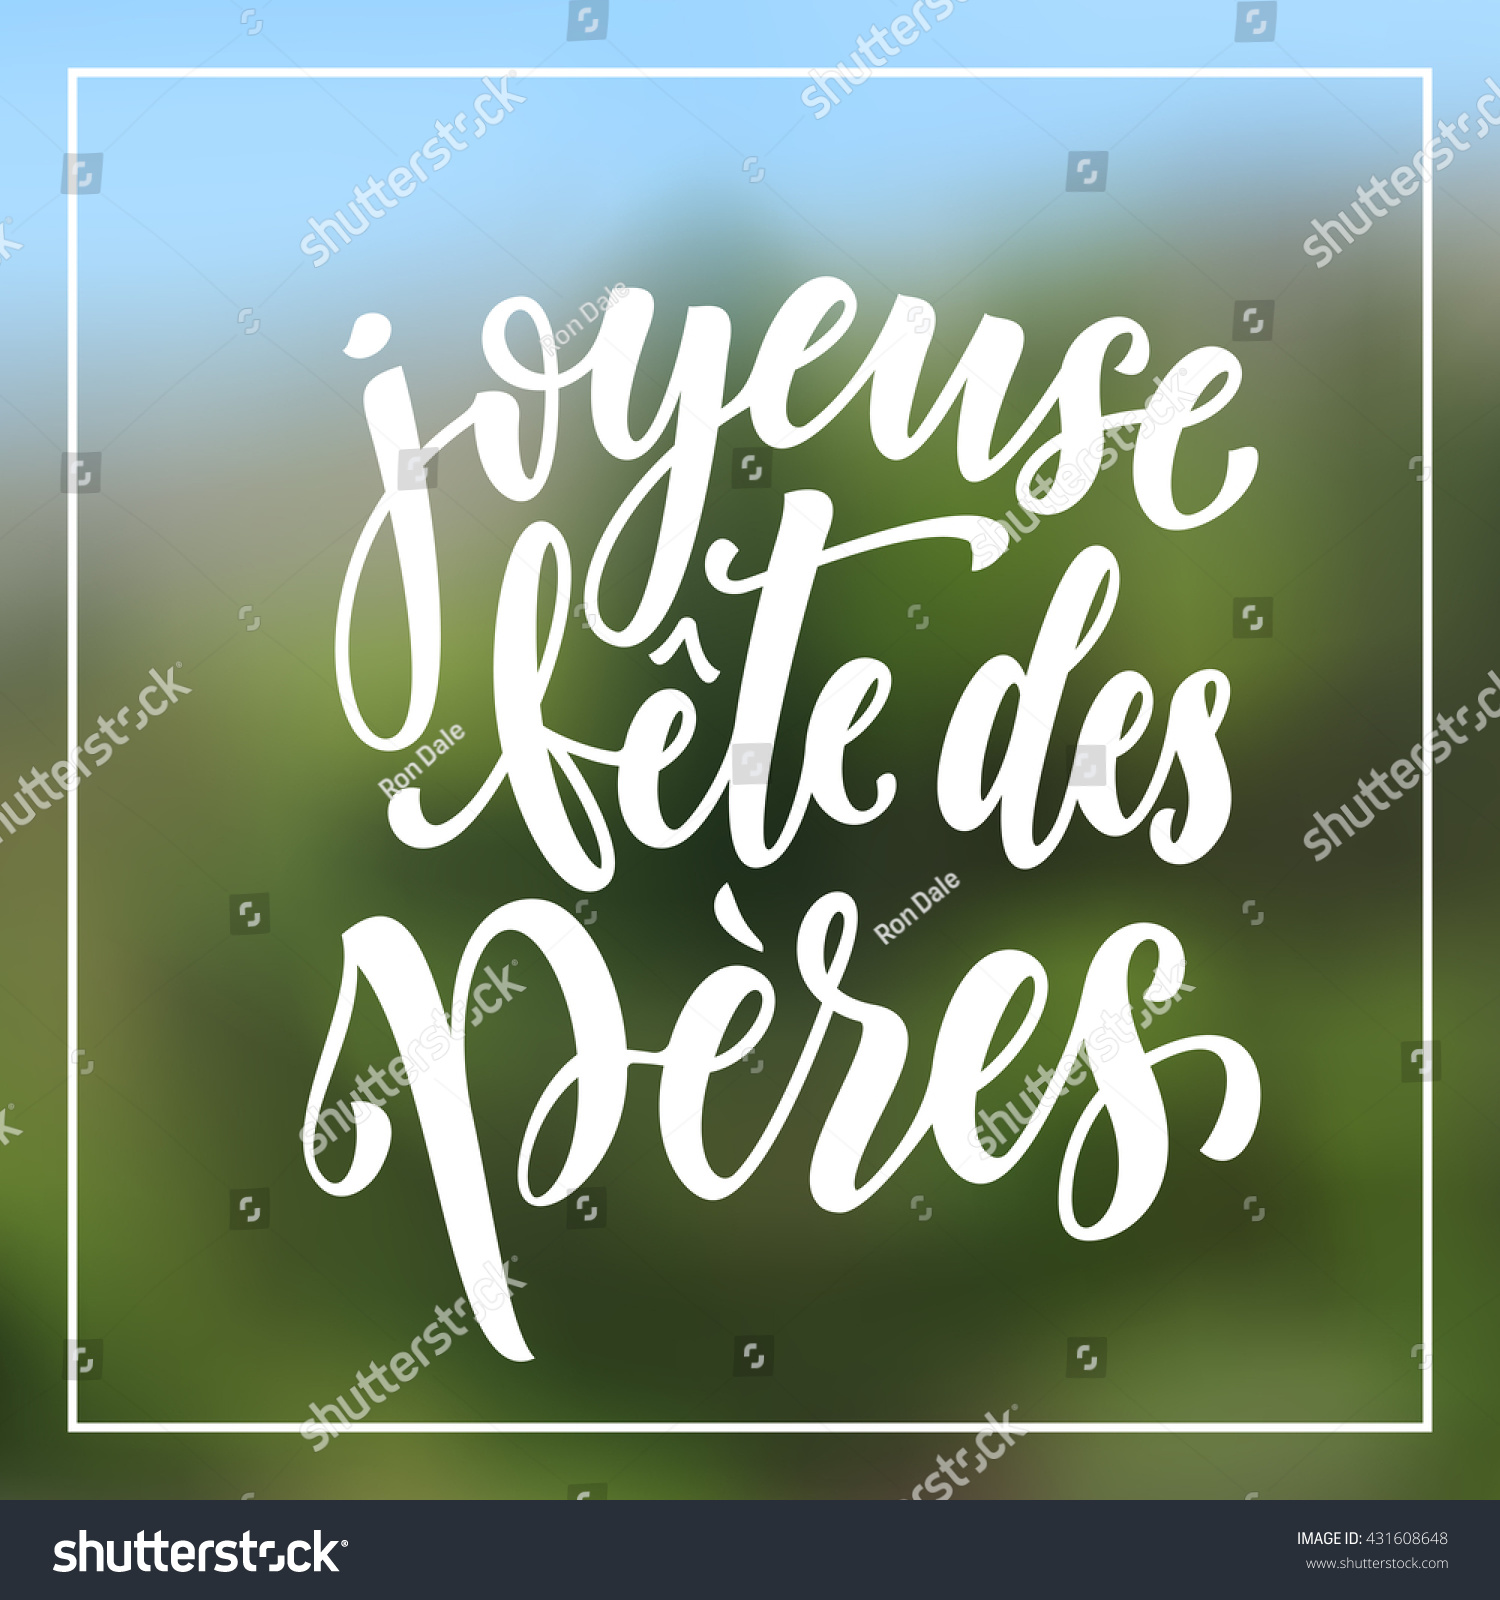 joyeuse fete des peres vector greeting stock vector 431608648 shutterstock. Black Bedroom Furniture Sets. Home Design Ideas